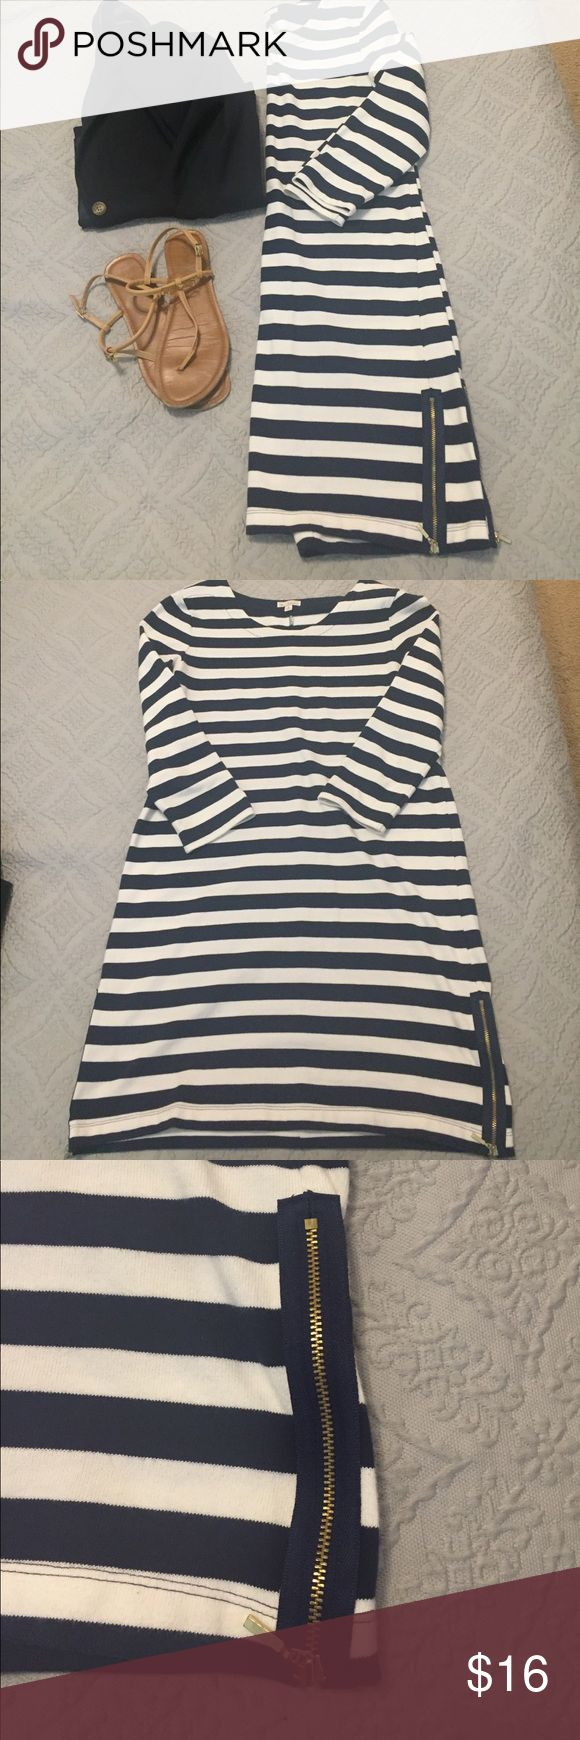 Nautical striped Gap dress! Navy and white striped dress from Gap! 3/4 length sleeves, with zipper on the sides at the bottom. Material holds its shape well! GAP Dresses